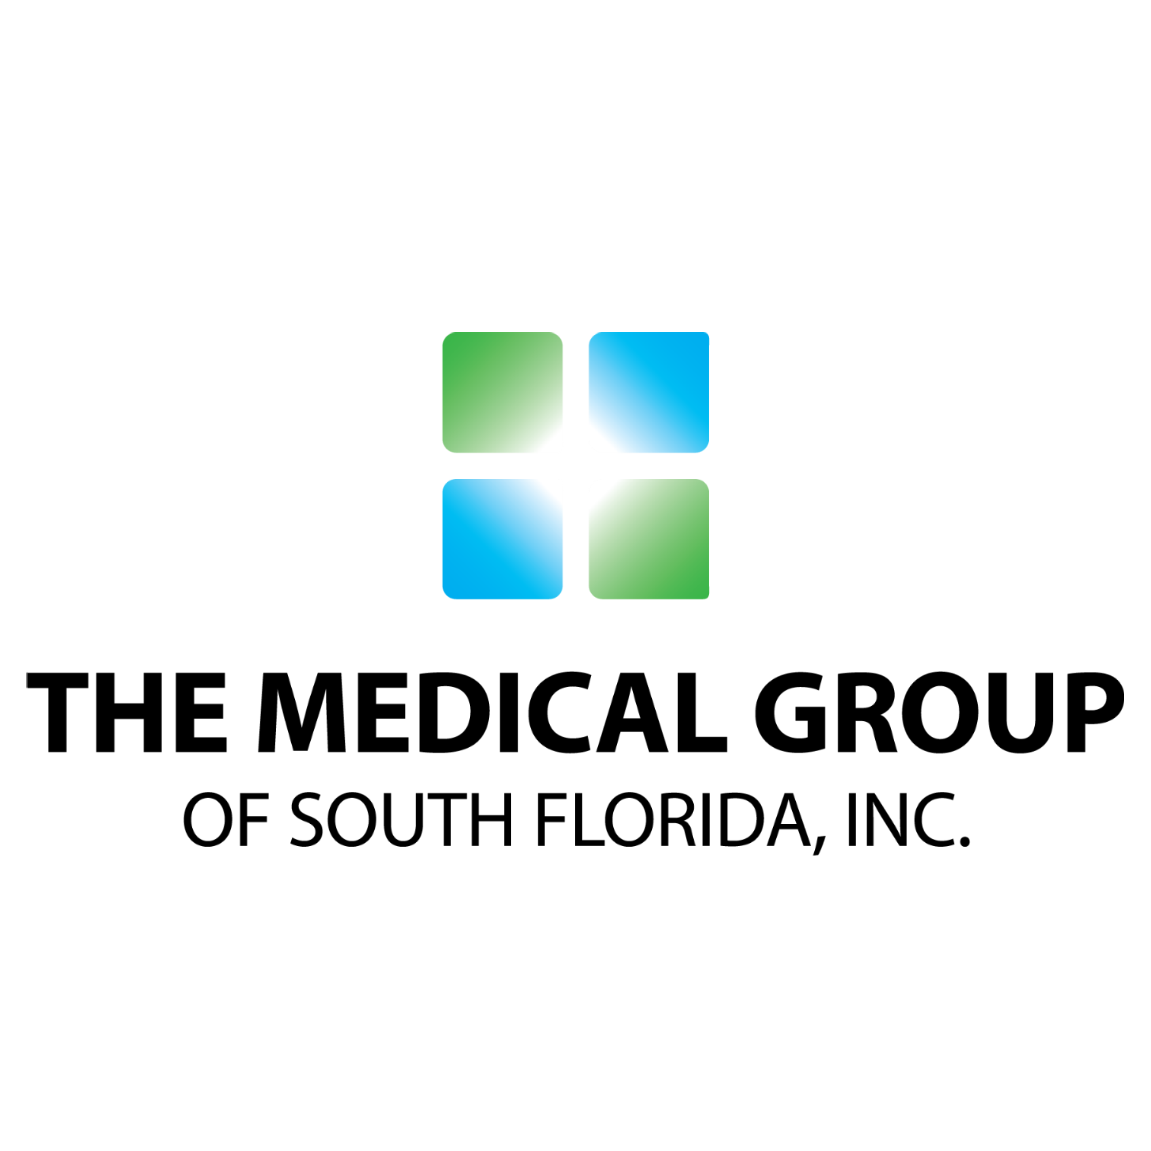 image of The Medical Group of South Florida